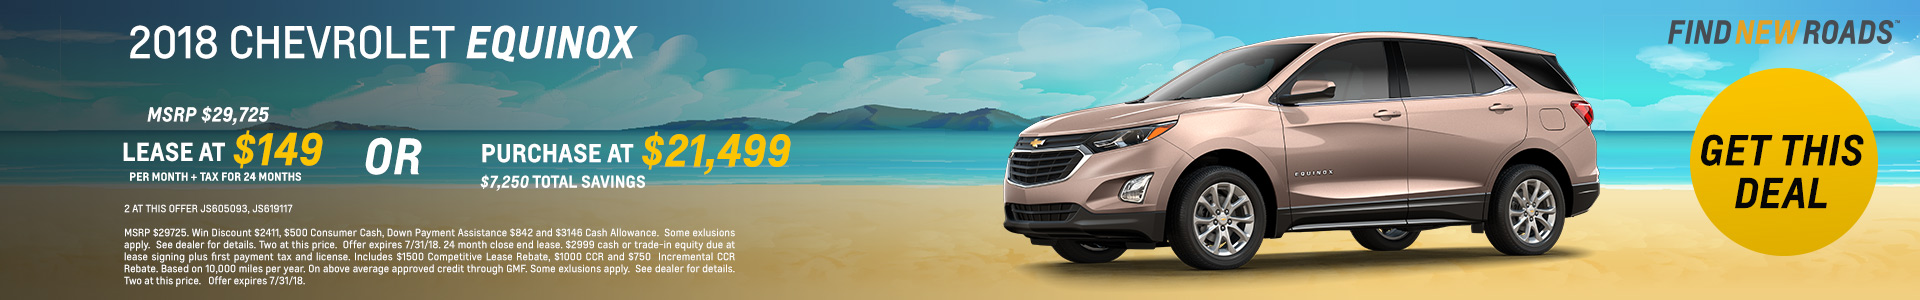 2018 Chevy Equinox $21499